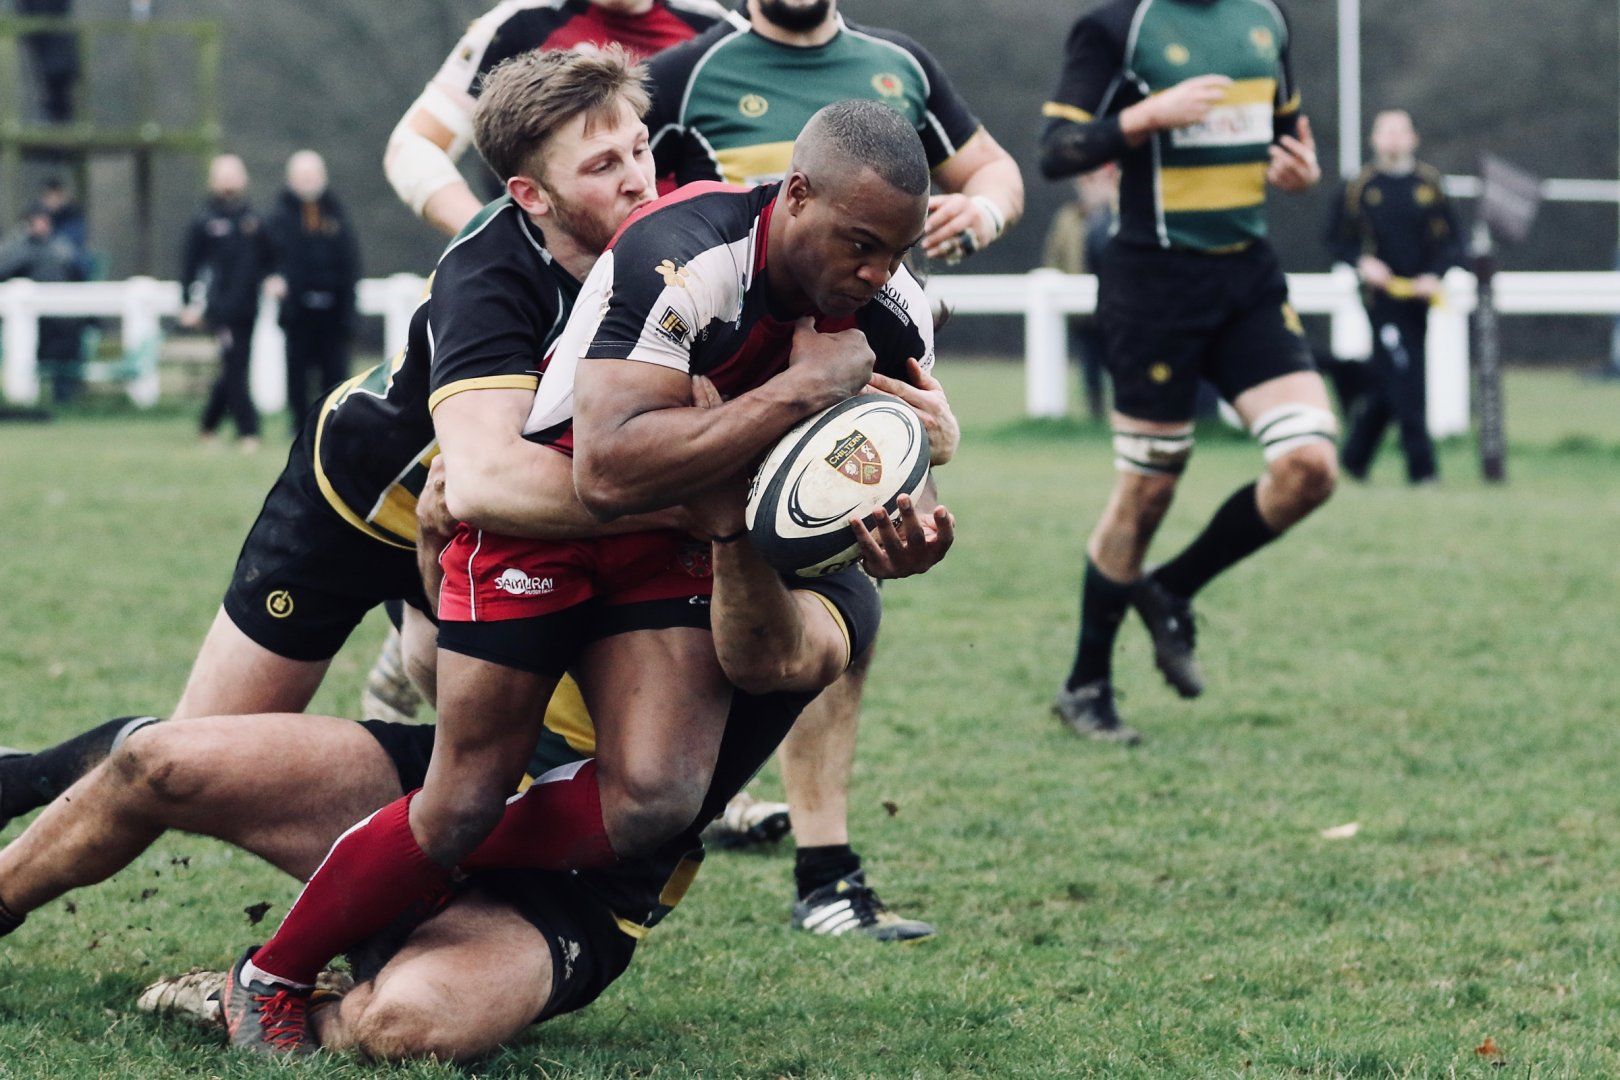 chiltern rugby